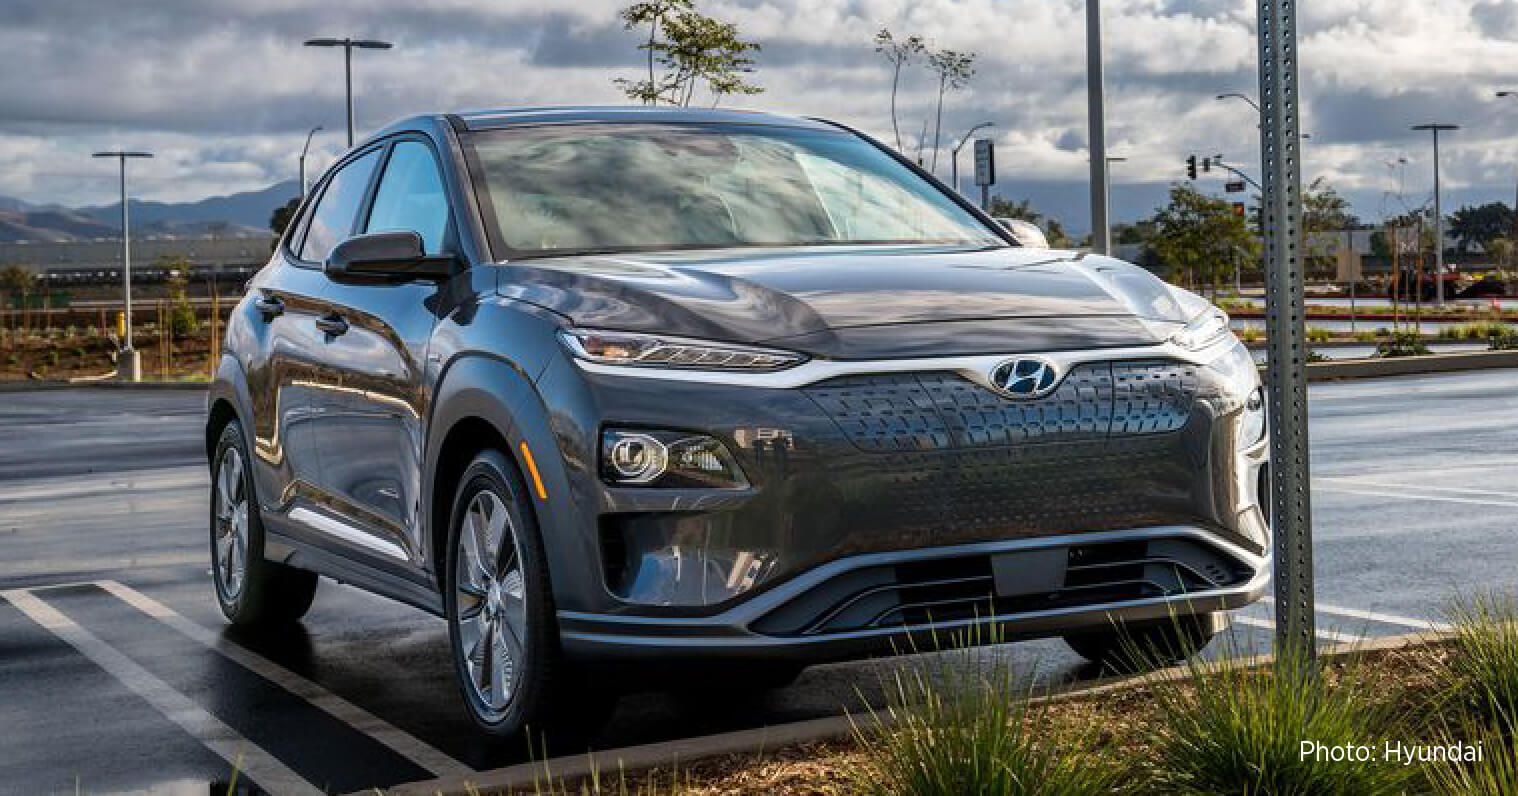 Everything You Need to Know About Charging the Hyundai Kona